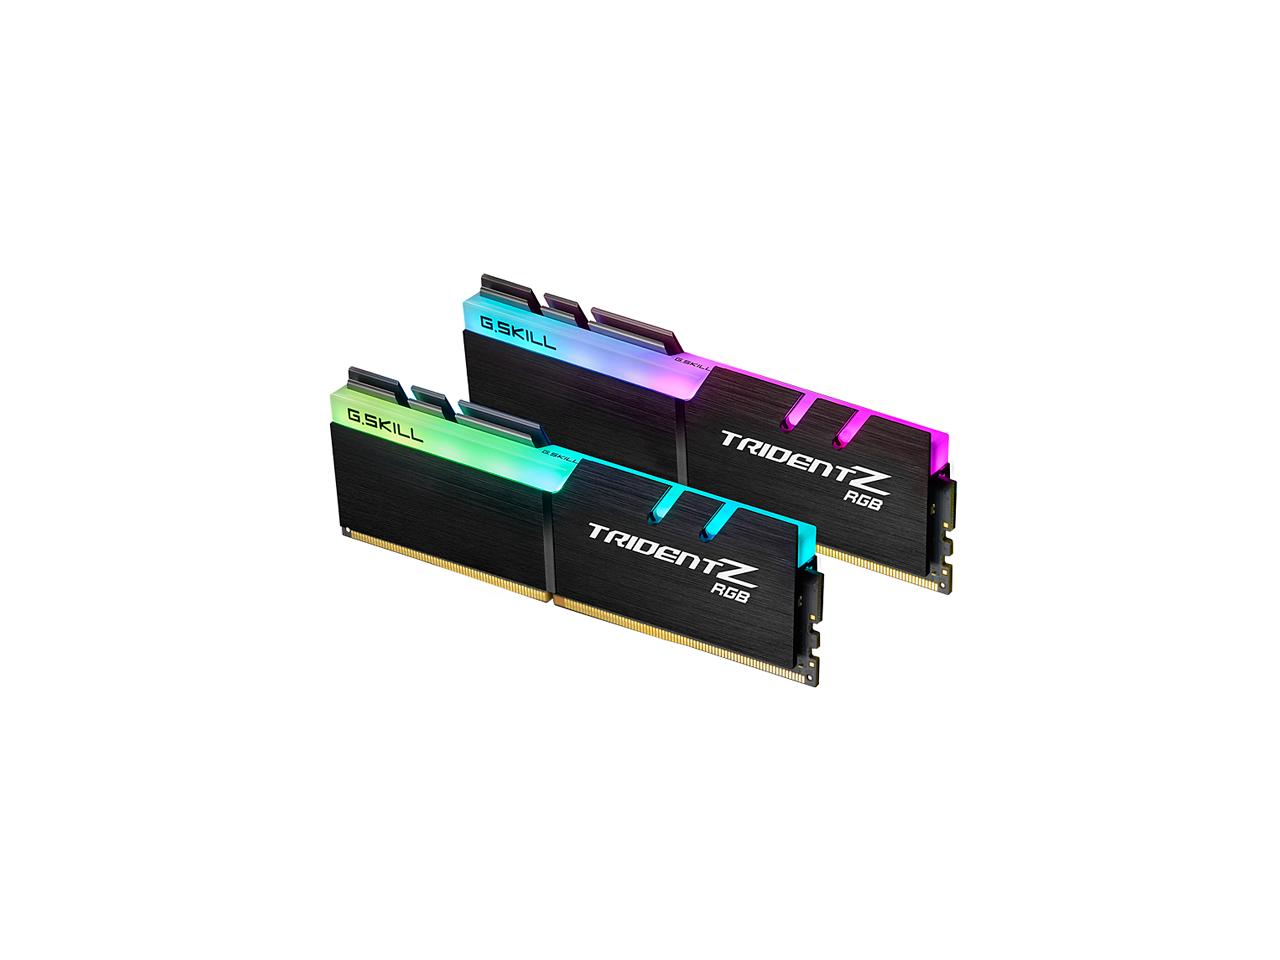 G.SKILL TridentZ RGB Series 16GB (2 x 8GB) 288-Pin DDR43200MHz (PC4 25600) Desktop Memory Model F4-3200C16D-16GTZR